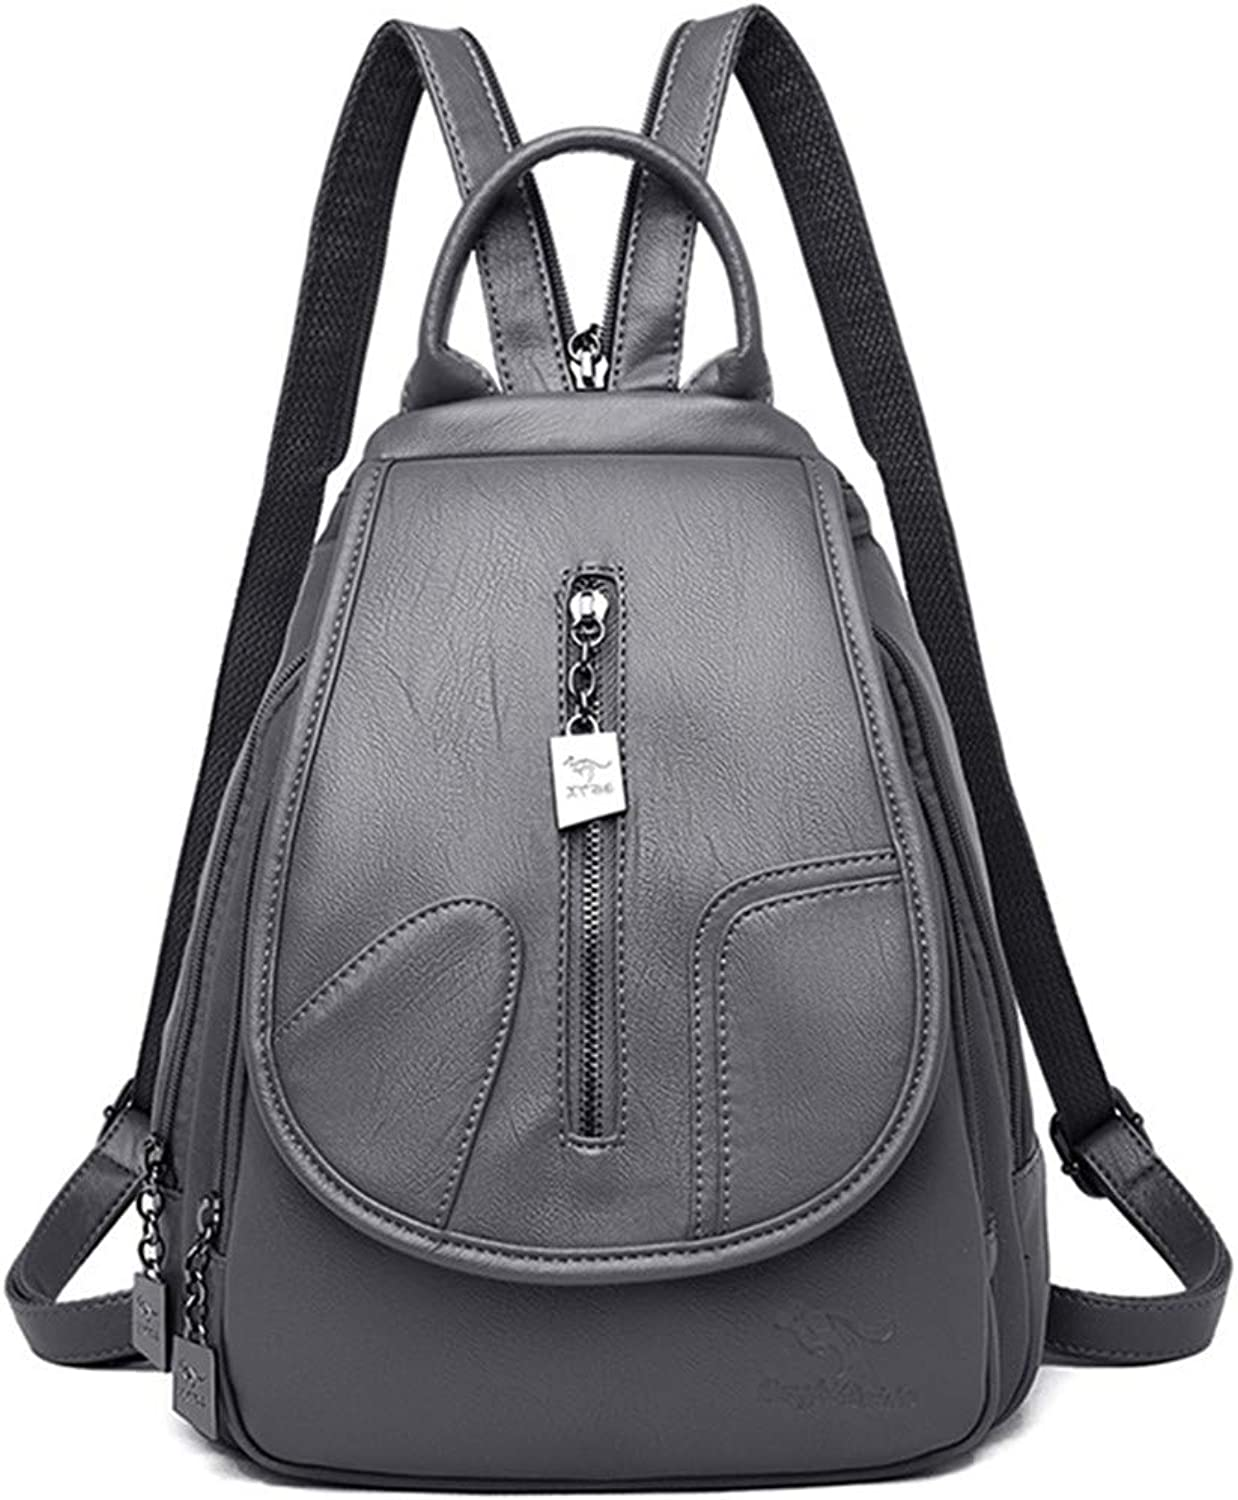 d19a7c1357cf Women Leather for Female Backpack College Travel Bagpack Pack Grey ...